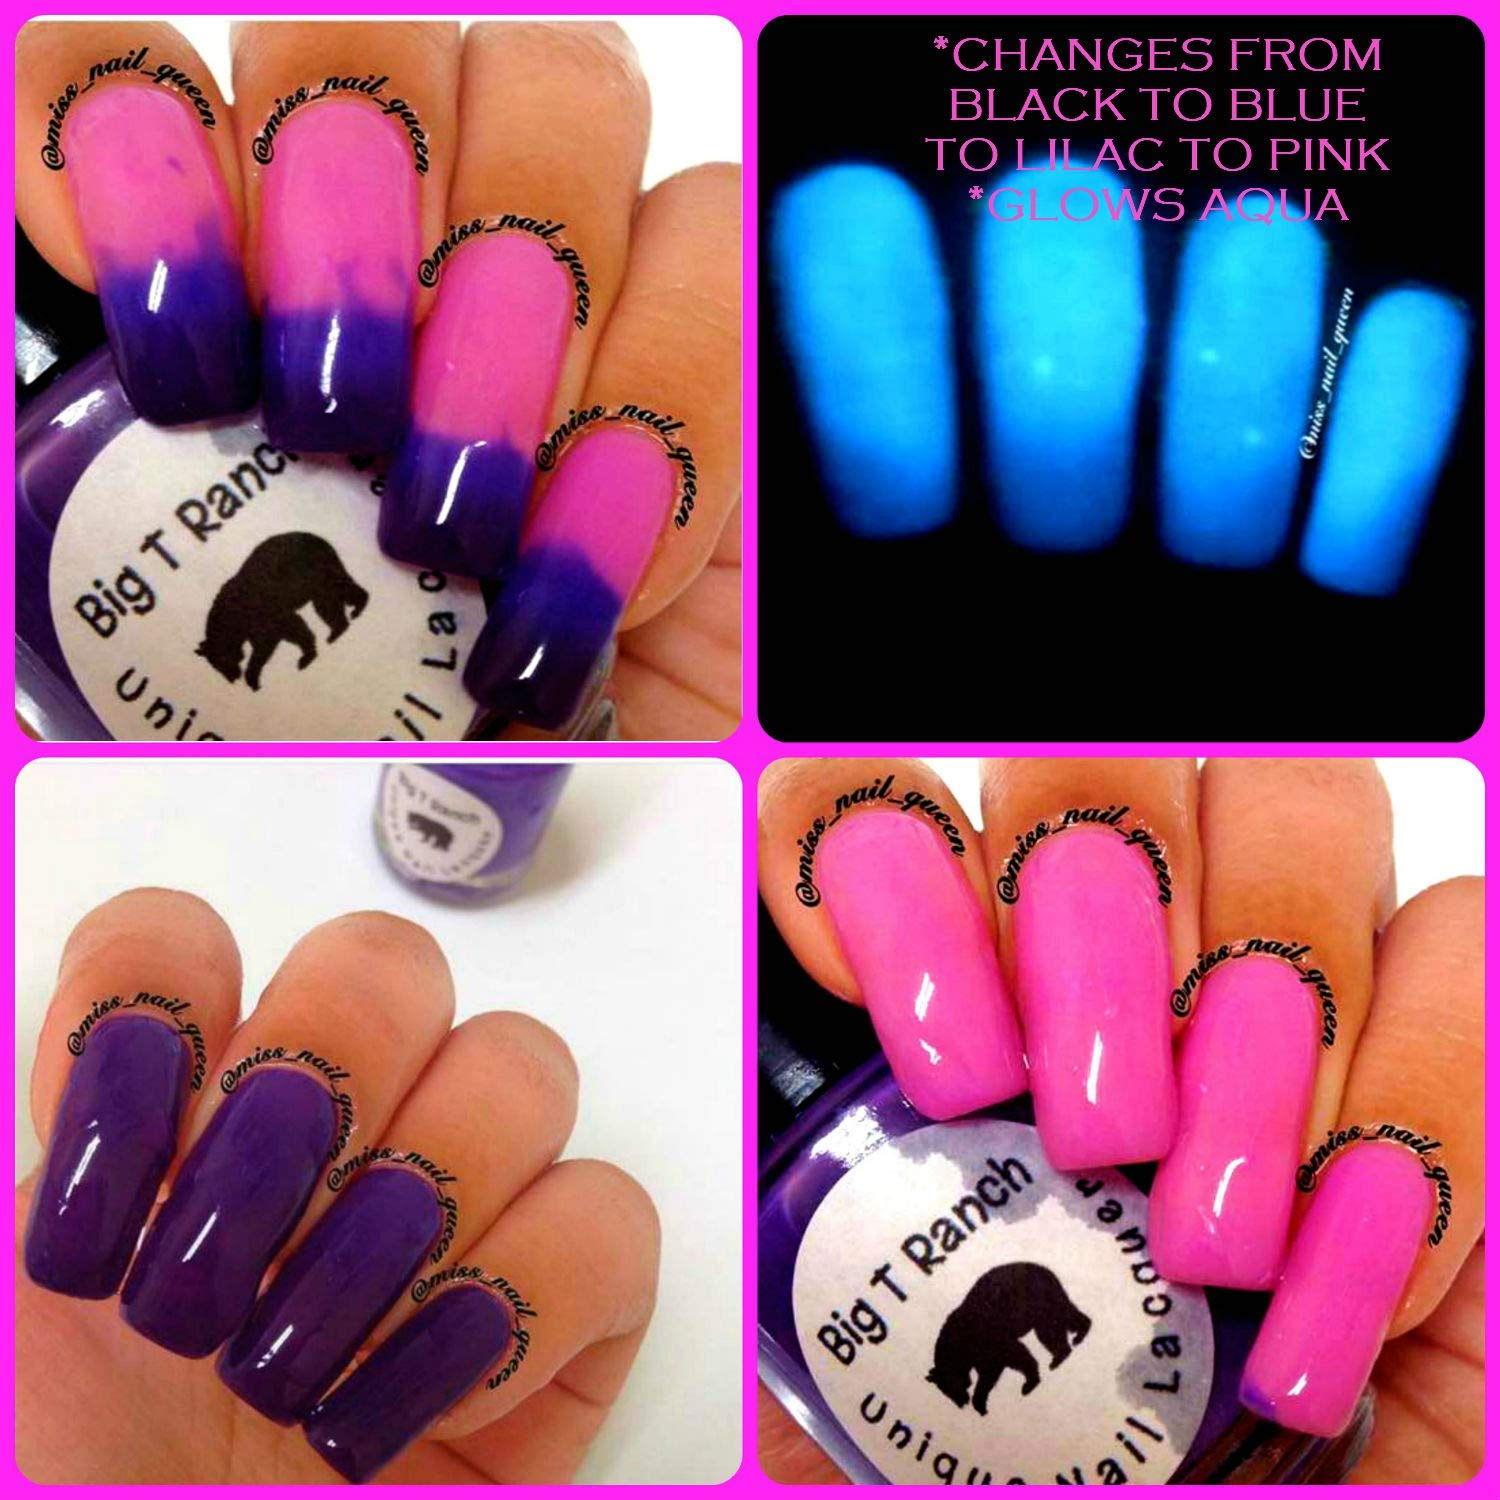 Amazon Com Color Changing Thermal Nail Polish Ombre Pink Lilac Blue Black Glows Aqua Pikes Peak Gift For Her Girlfriend Gift Handmade